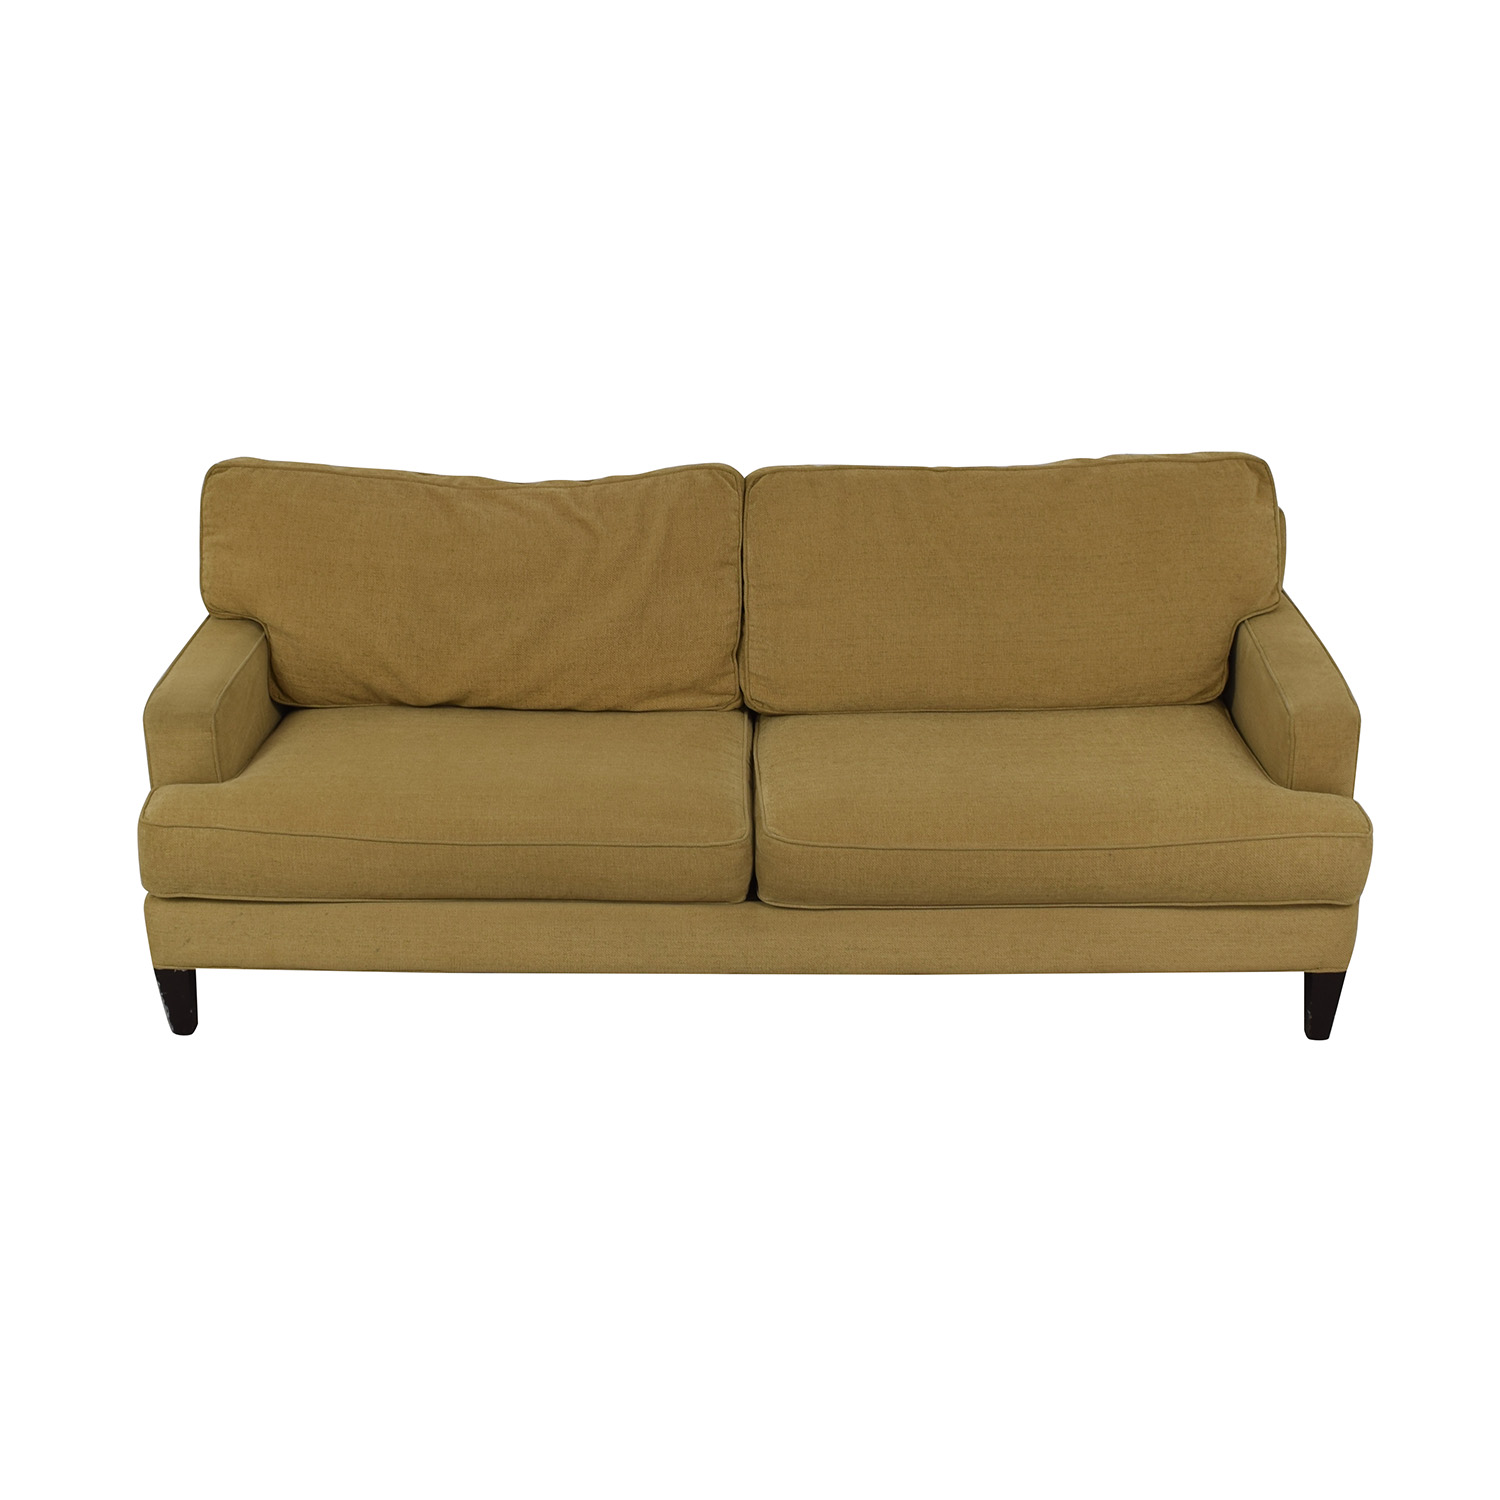 buy Pottery Barn Tan Two-Cushion Couch Pottery Barn Sofas